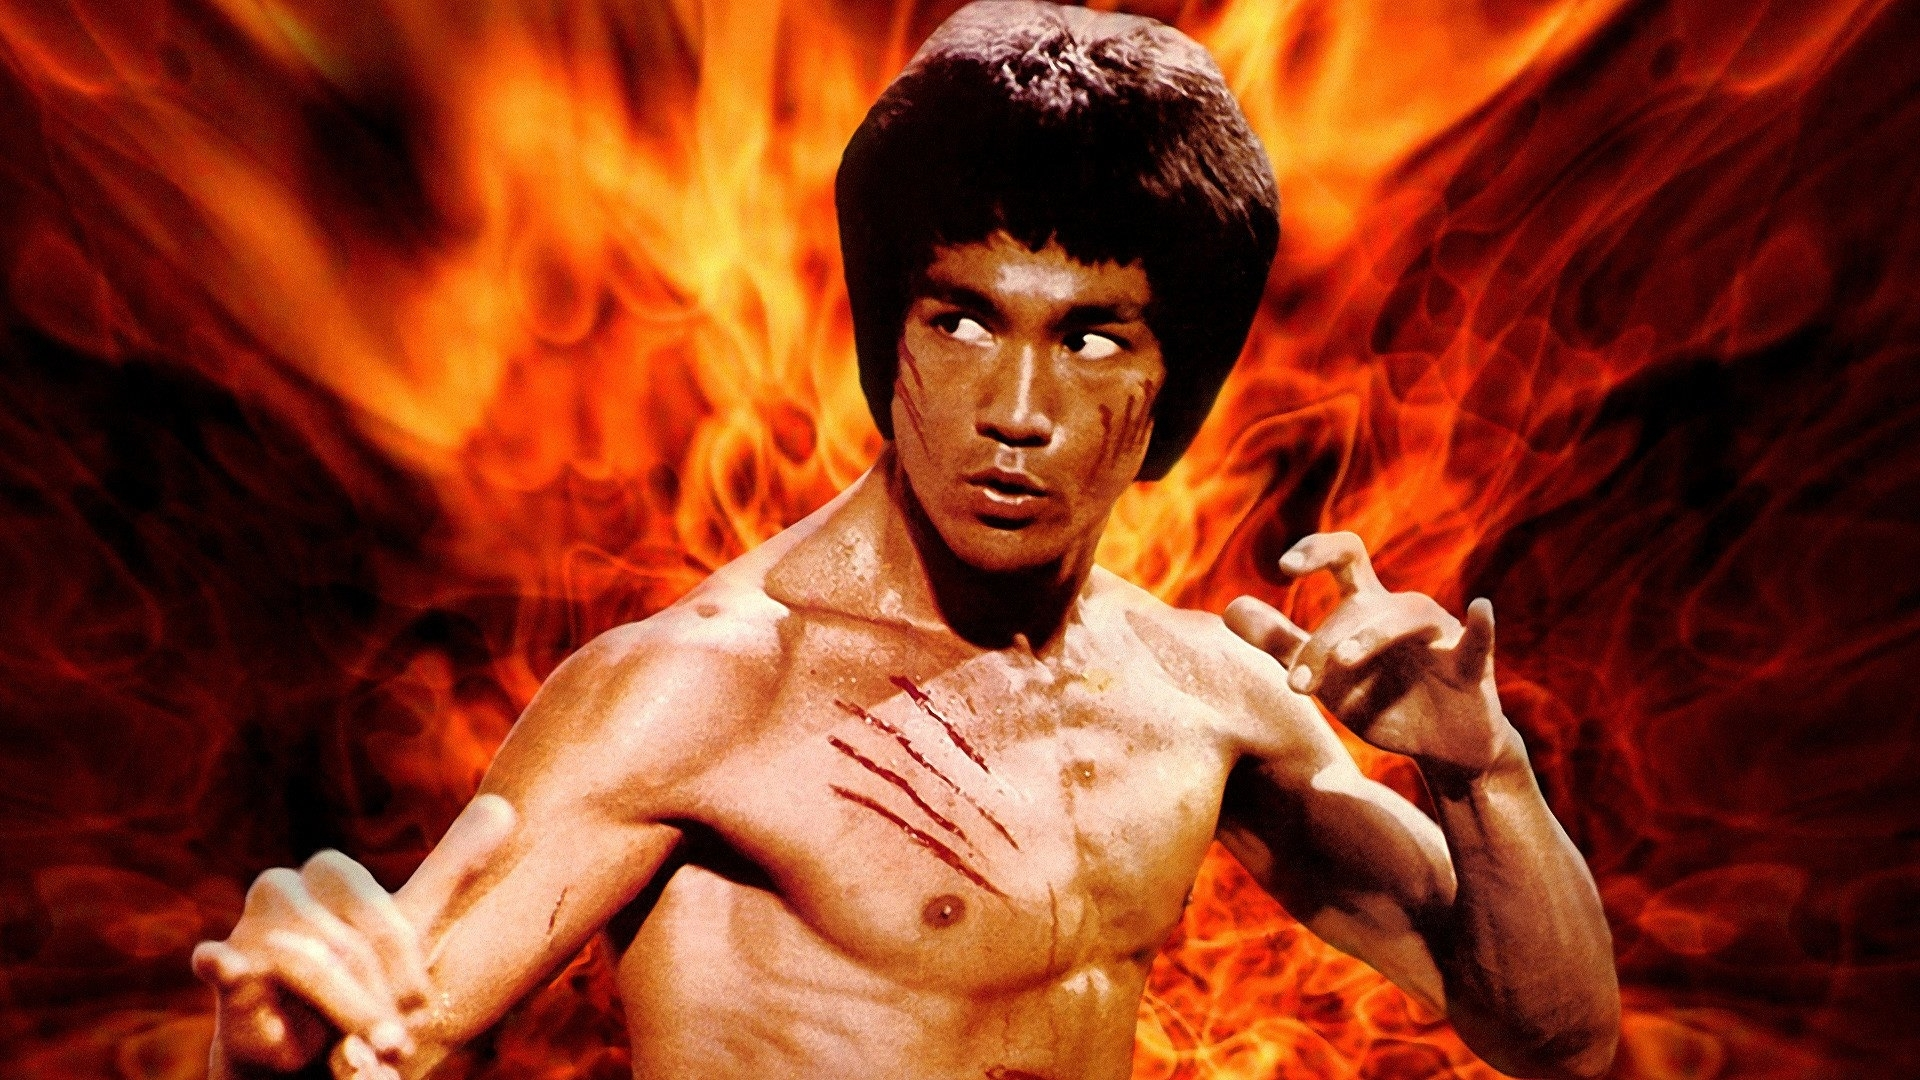 enter the dragon full hd fond d'écran and arrière-plan | 1920x1080